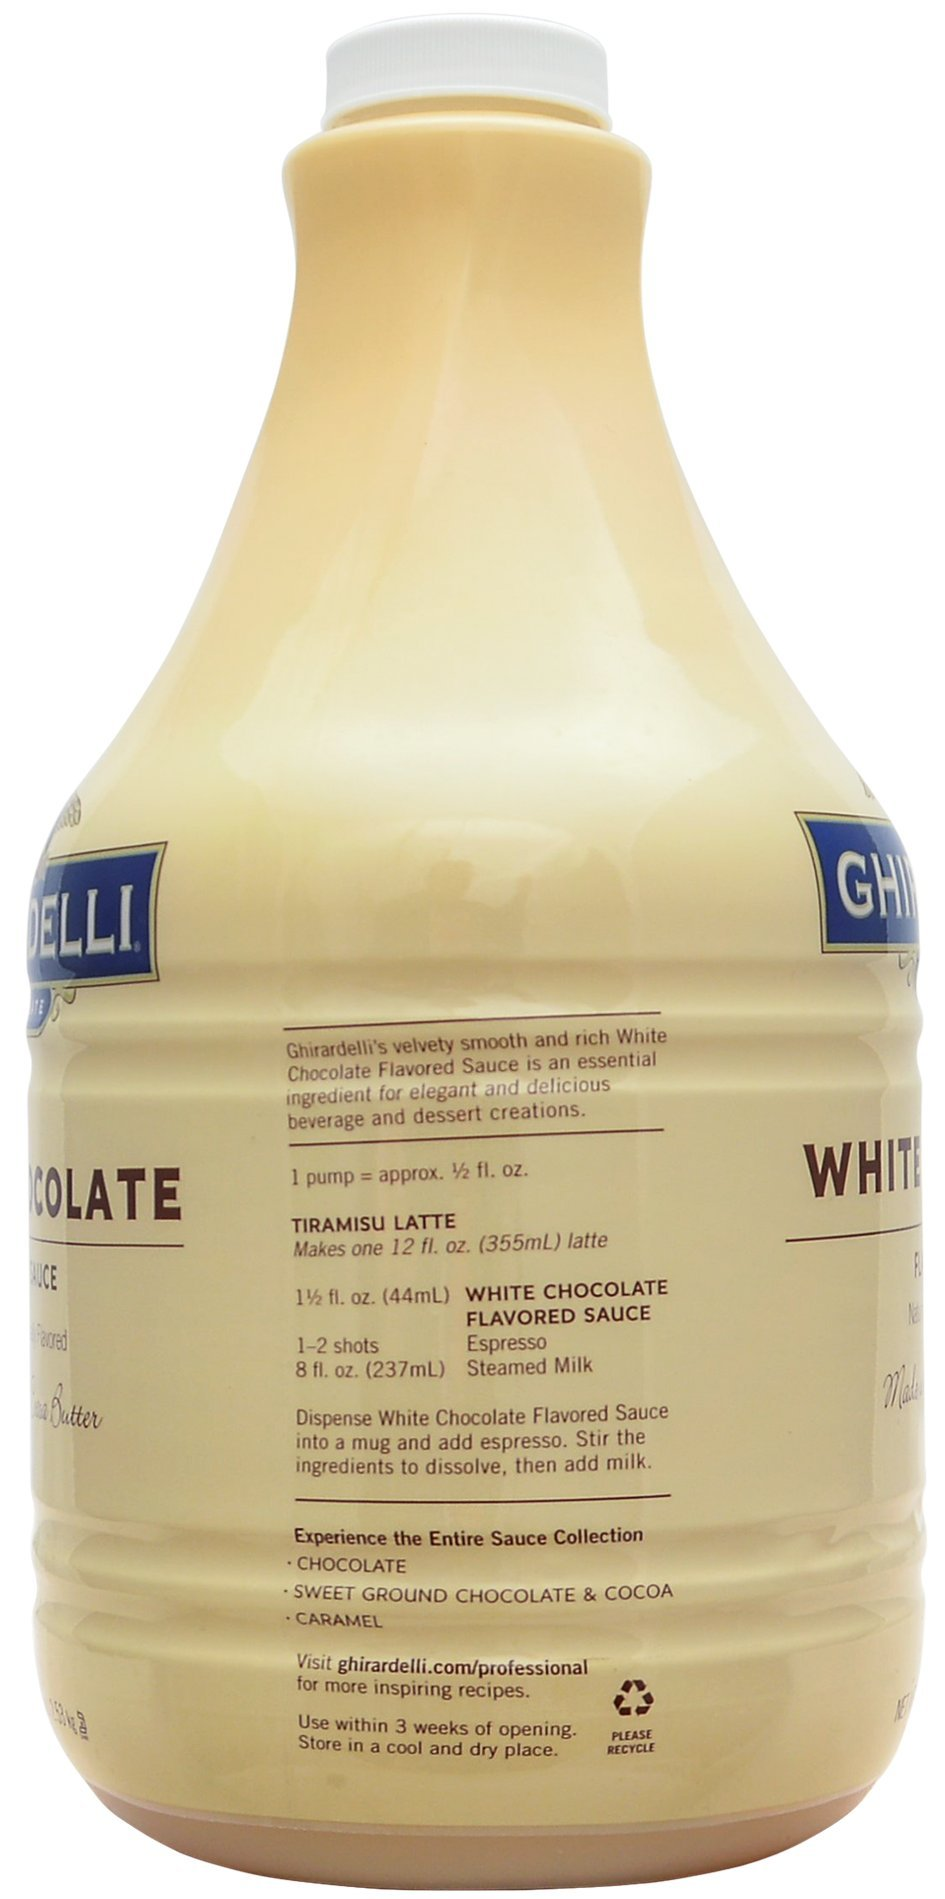 Ghirardelli - White Flavored Sauce, 89.4 Ounce Bottle - with Limited Edition Measuring Spoon by Ghirardelli (Image #3)